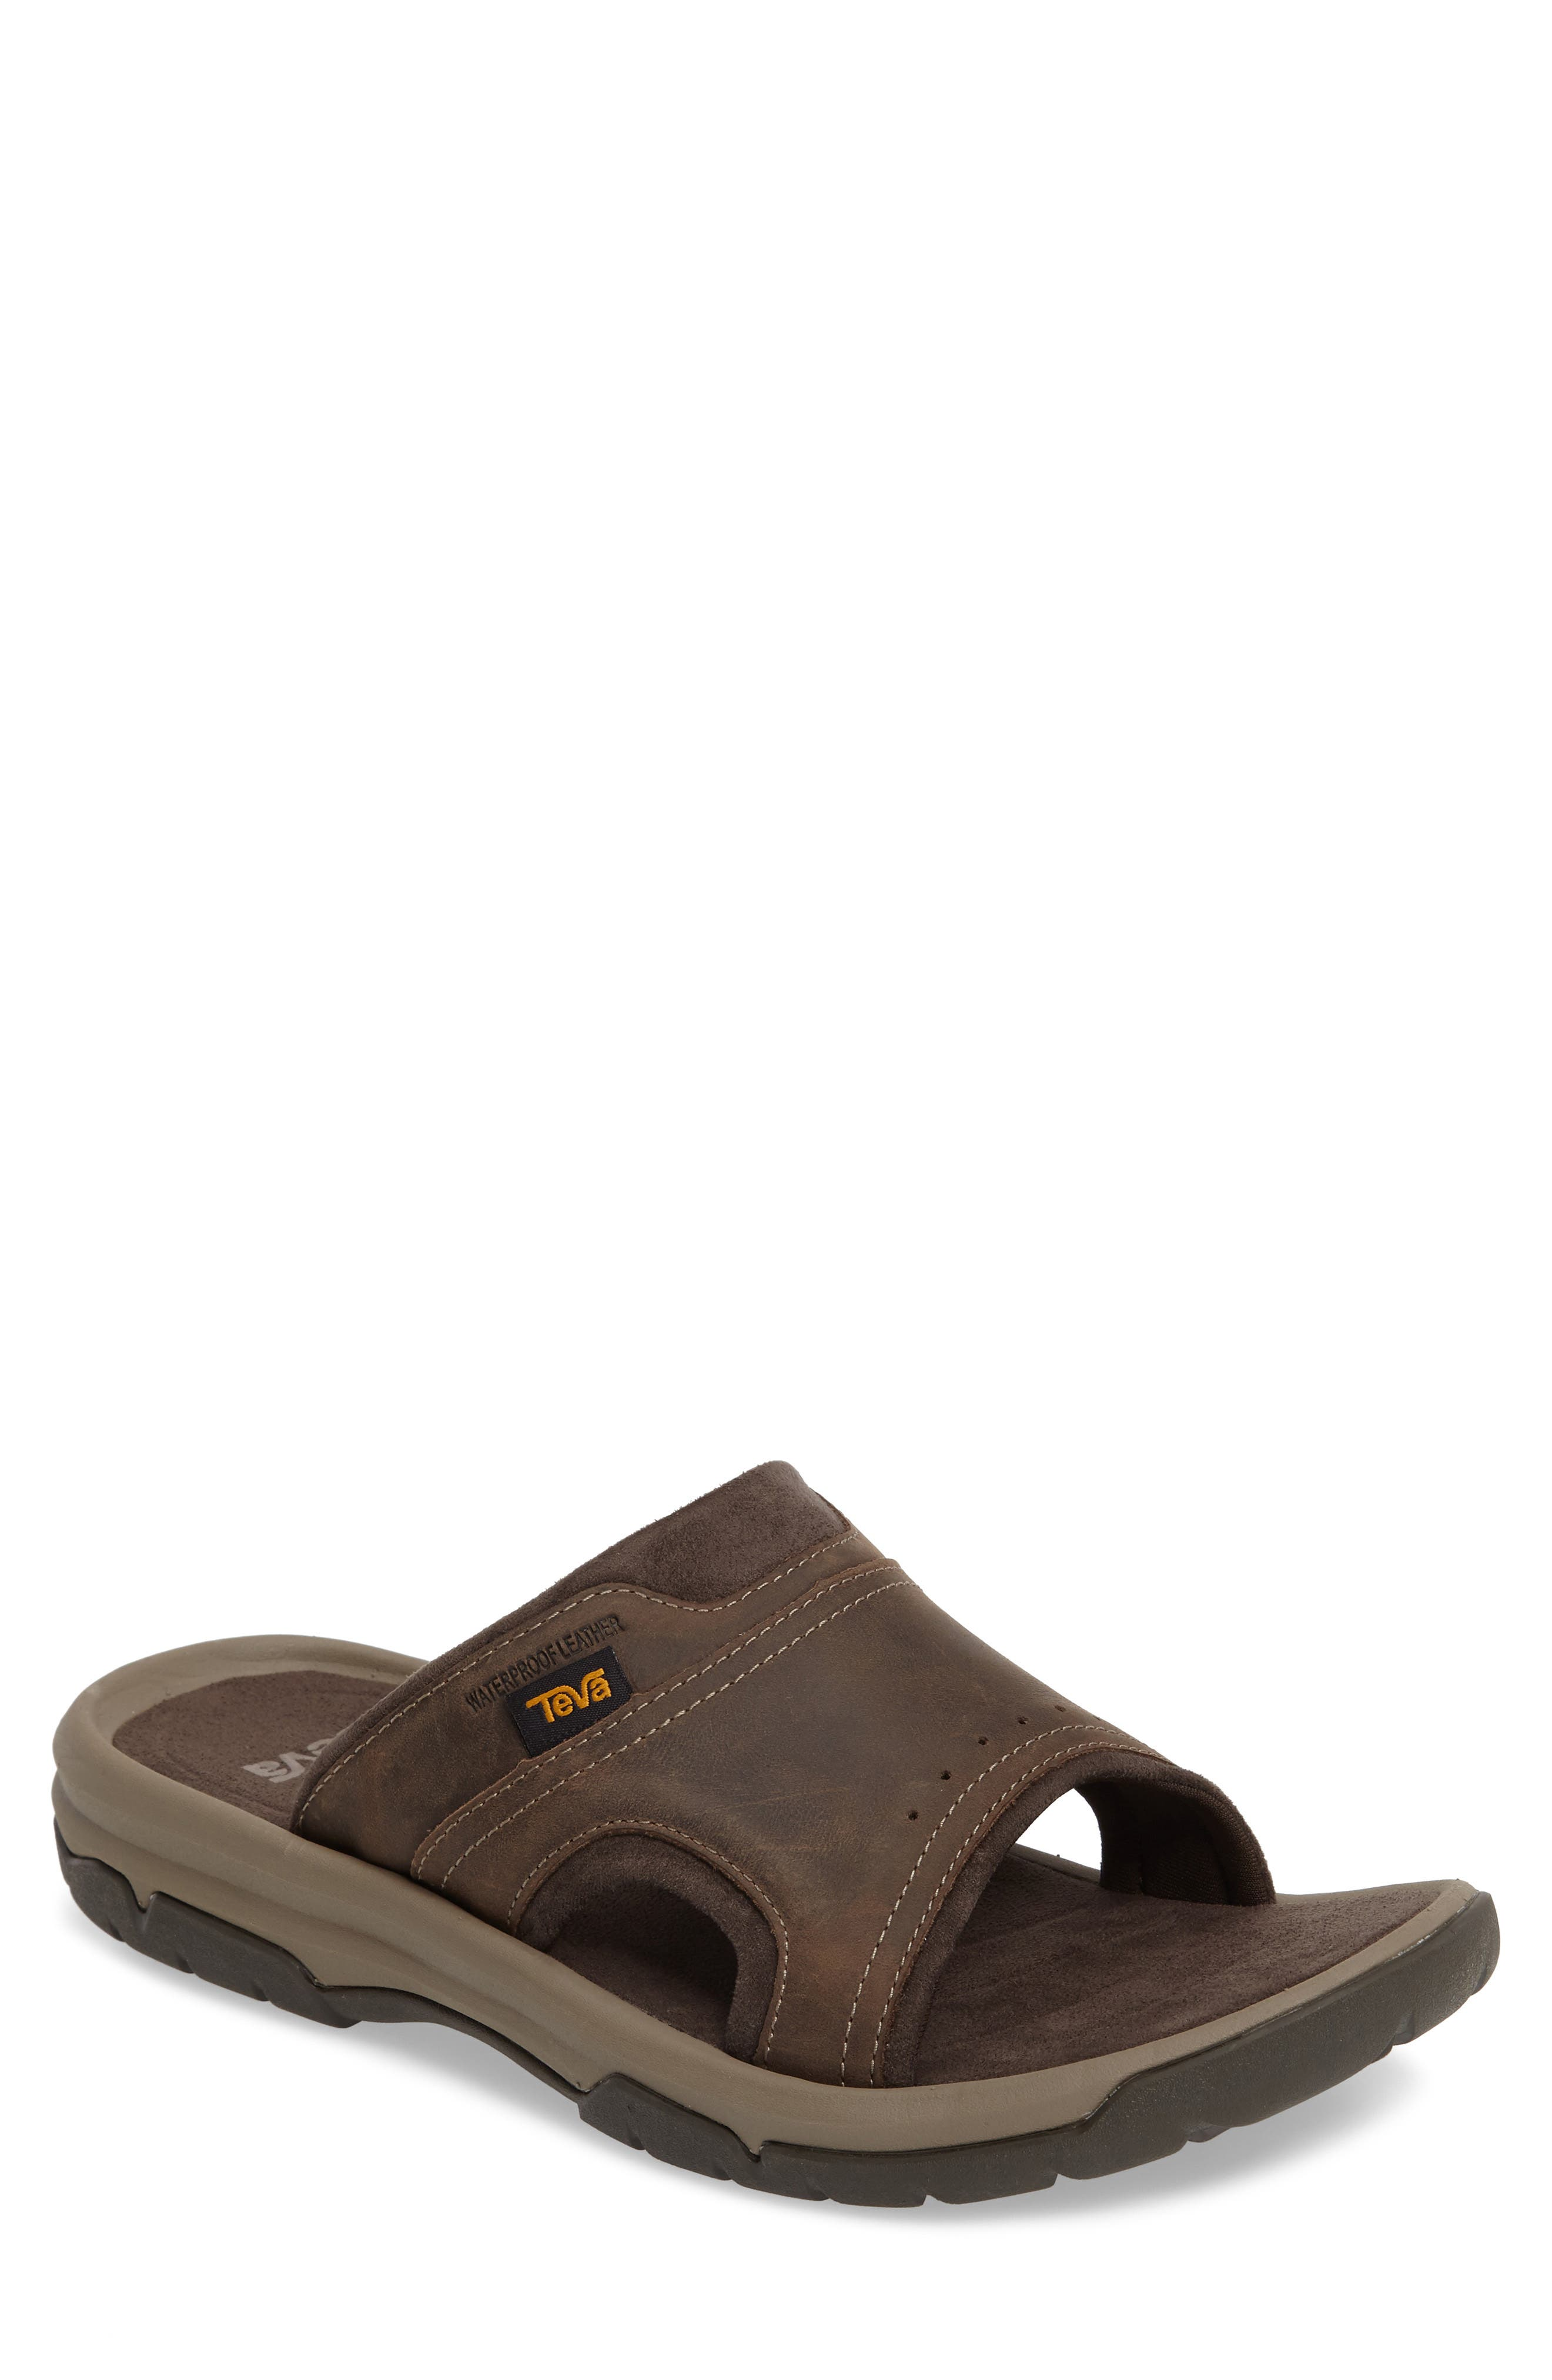 Teva Langdon Slide Sandal, Brown